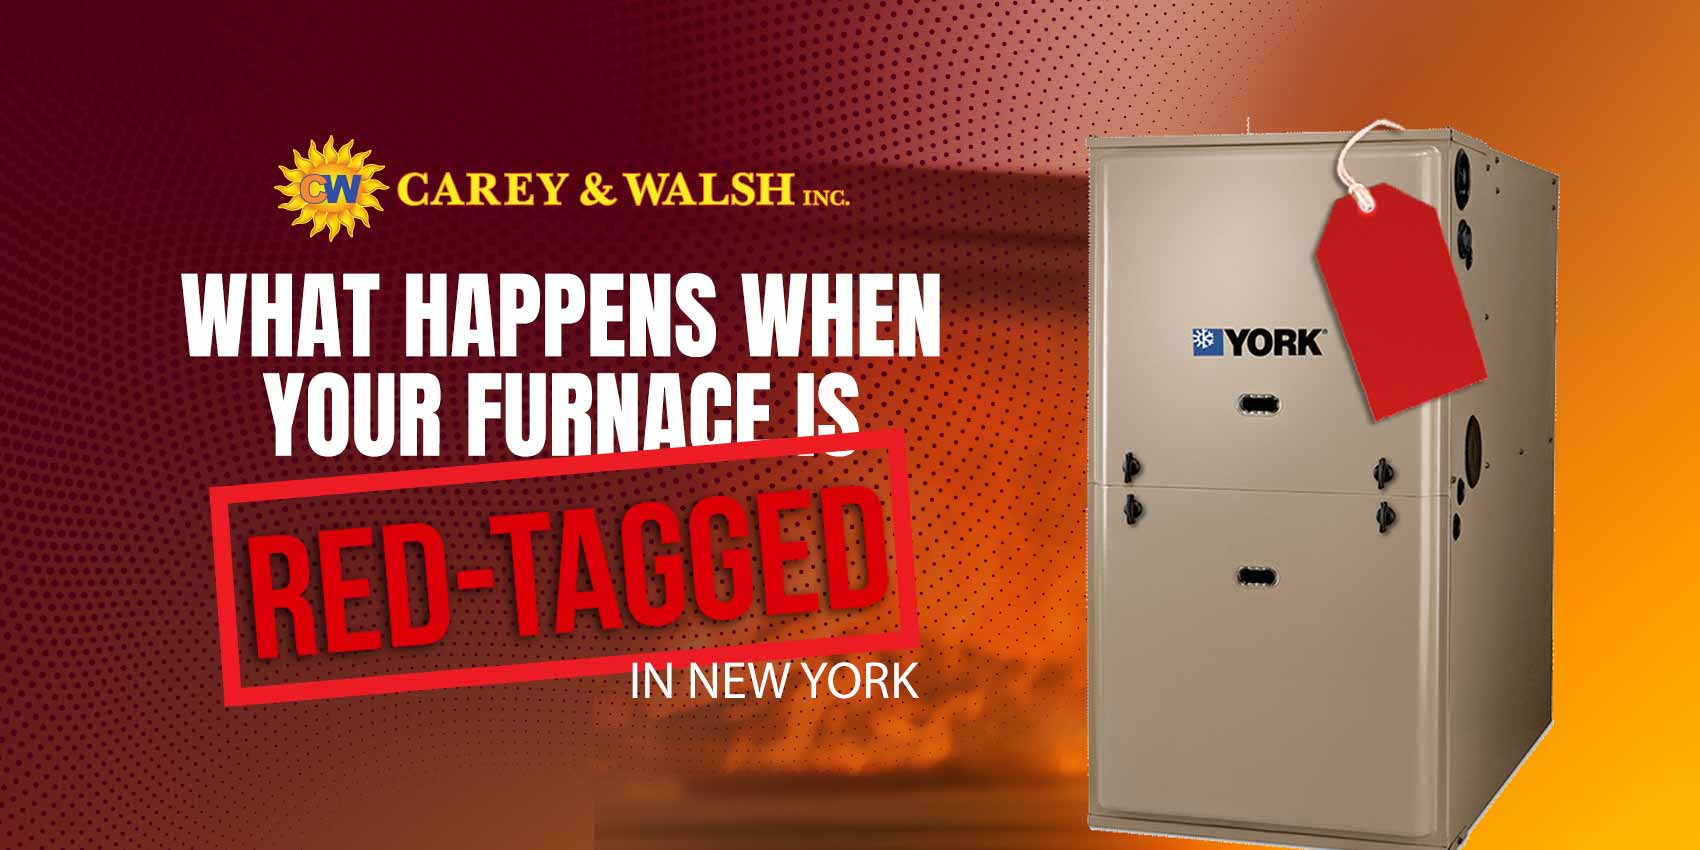 What Happens When Your Furnace is Red Tagged in New York